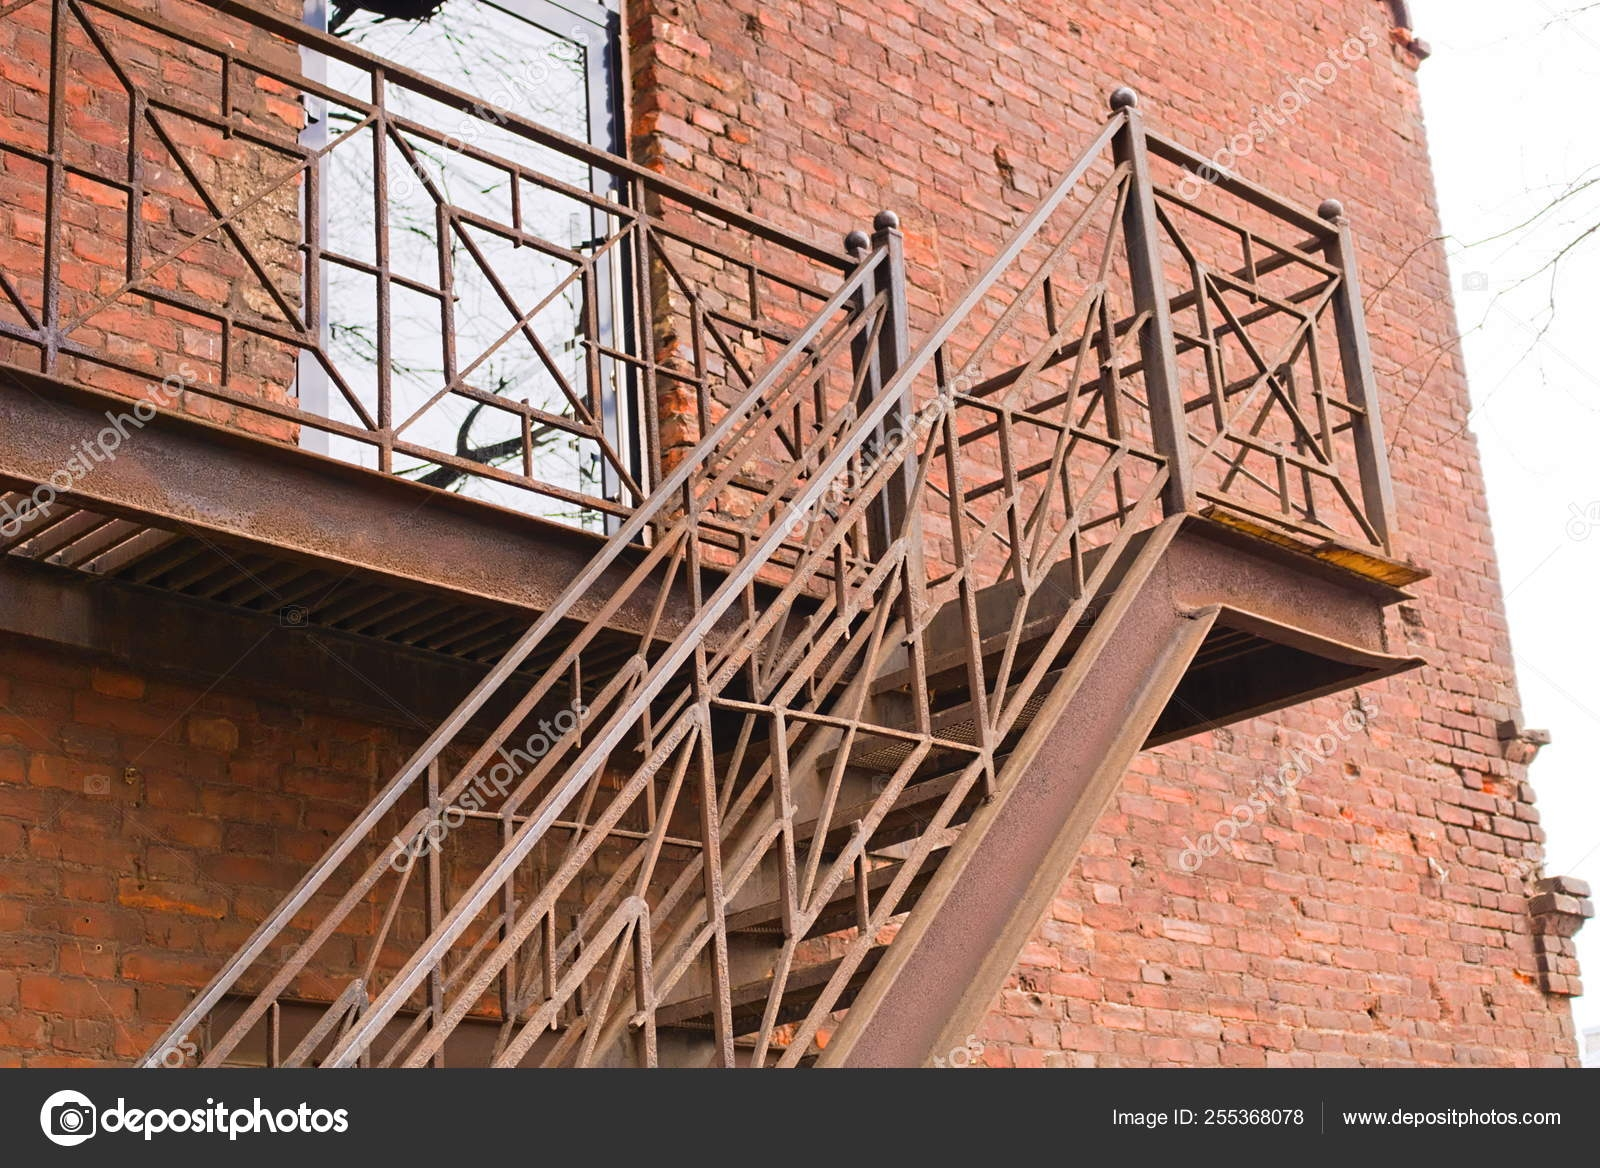 Fire Escape Stairs View From Below — Stock Photo © Linchk 255368078   Metal Steps For Outside   Loading Dock   Covered   Round   Easy   Outdoors